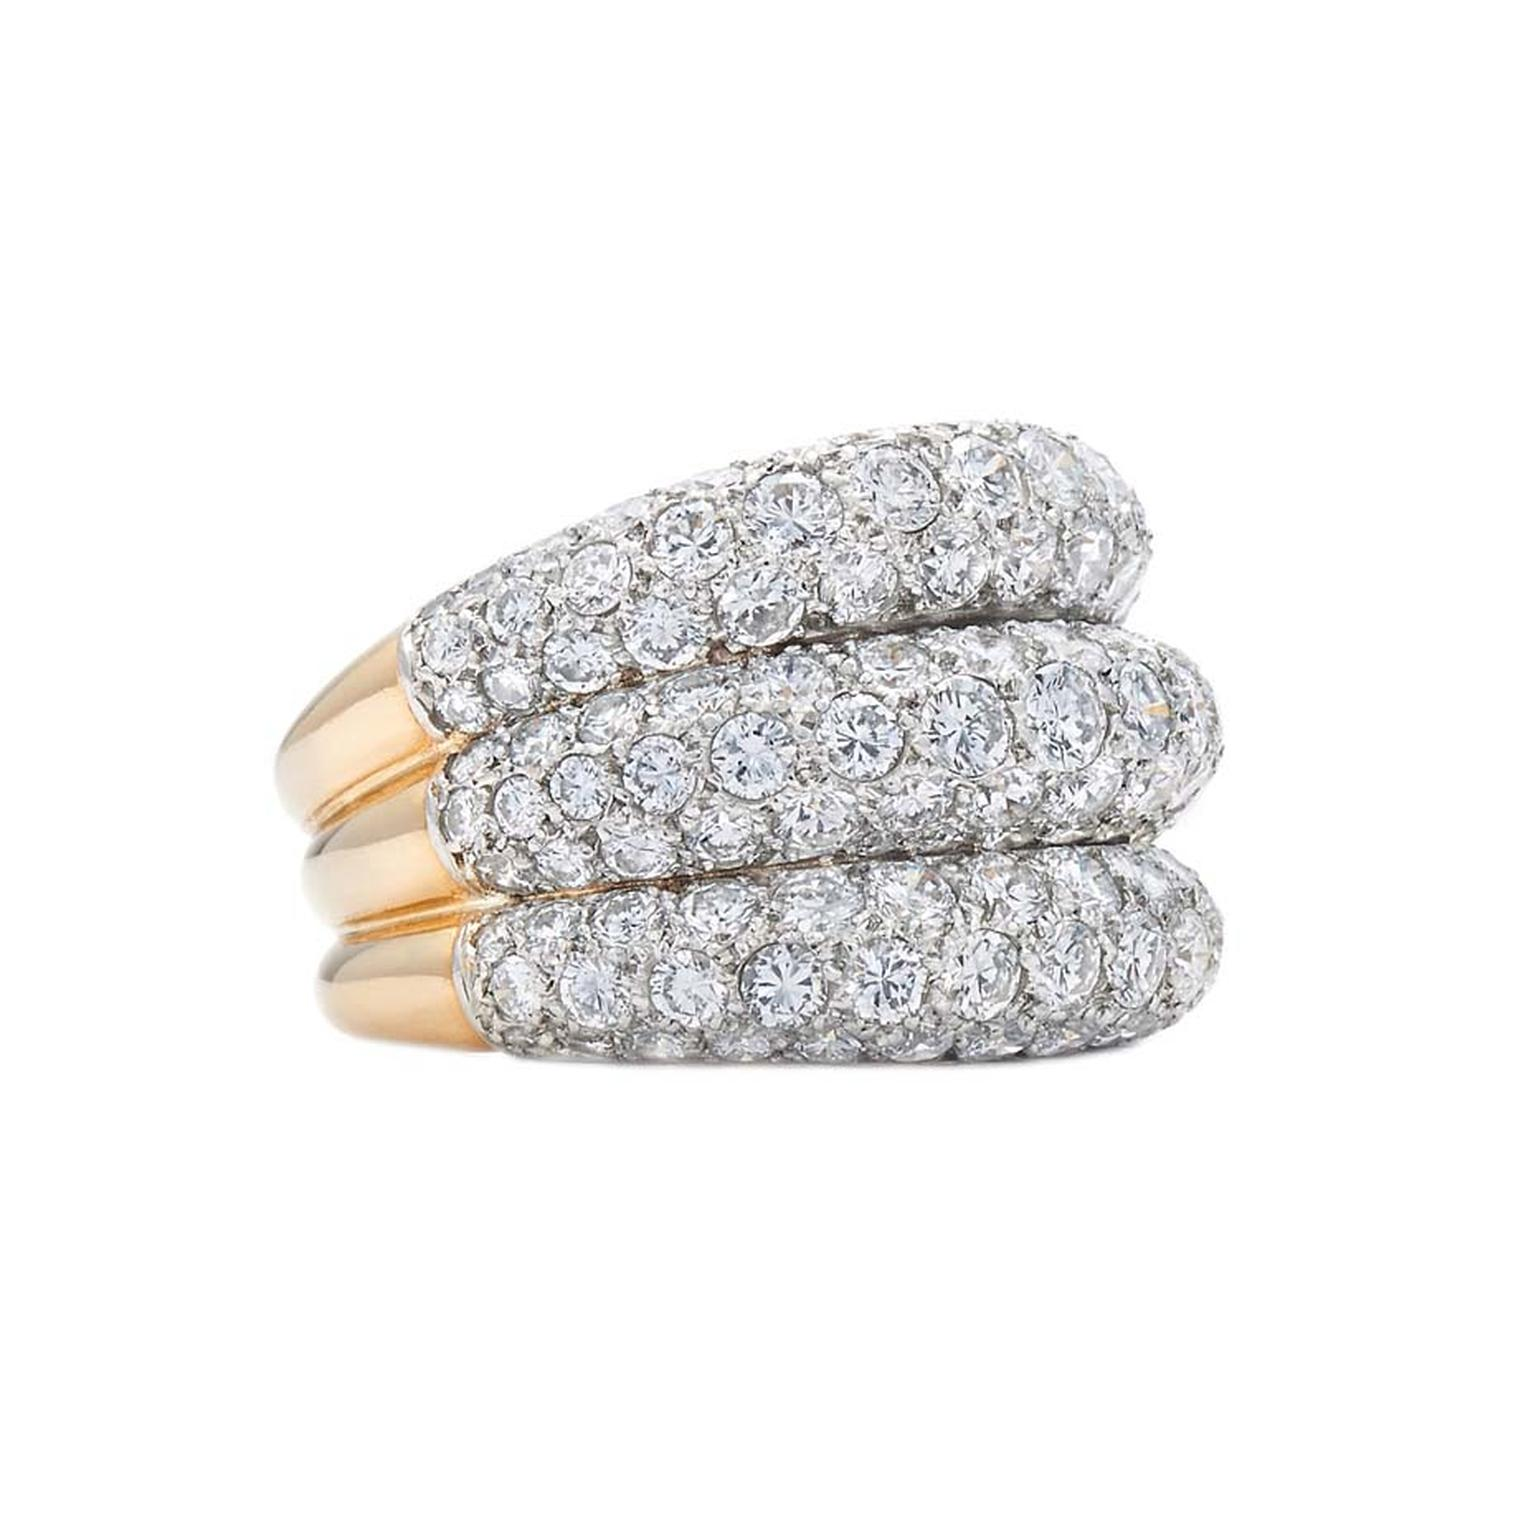 Cartier Triple Row pavé diamond ring, available from Fred Leighton at 1stdibs.com ($55,000).